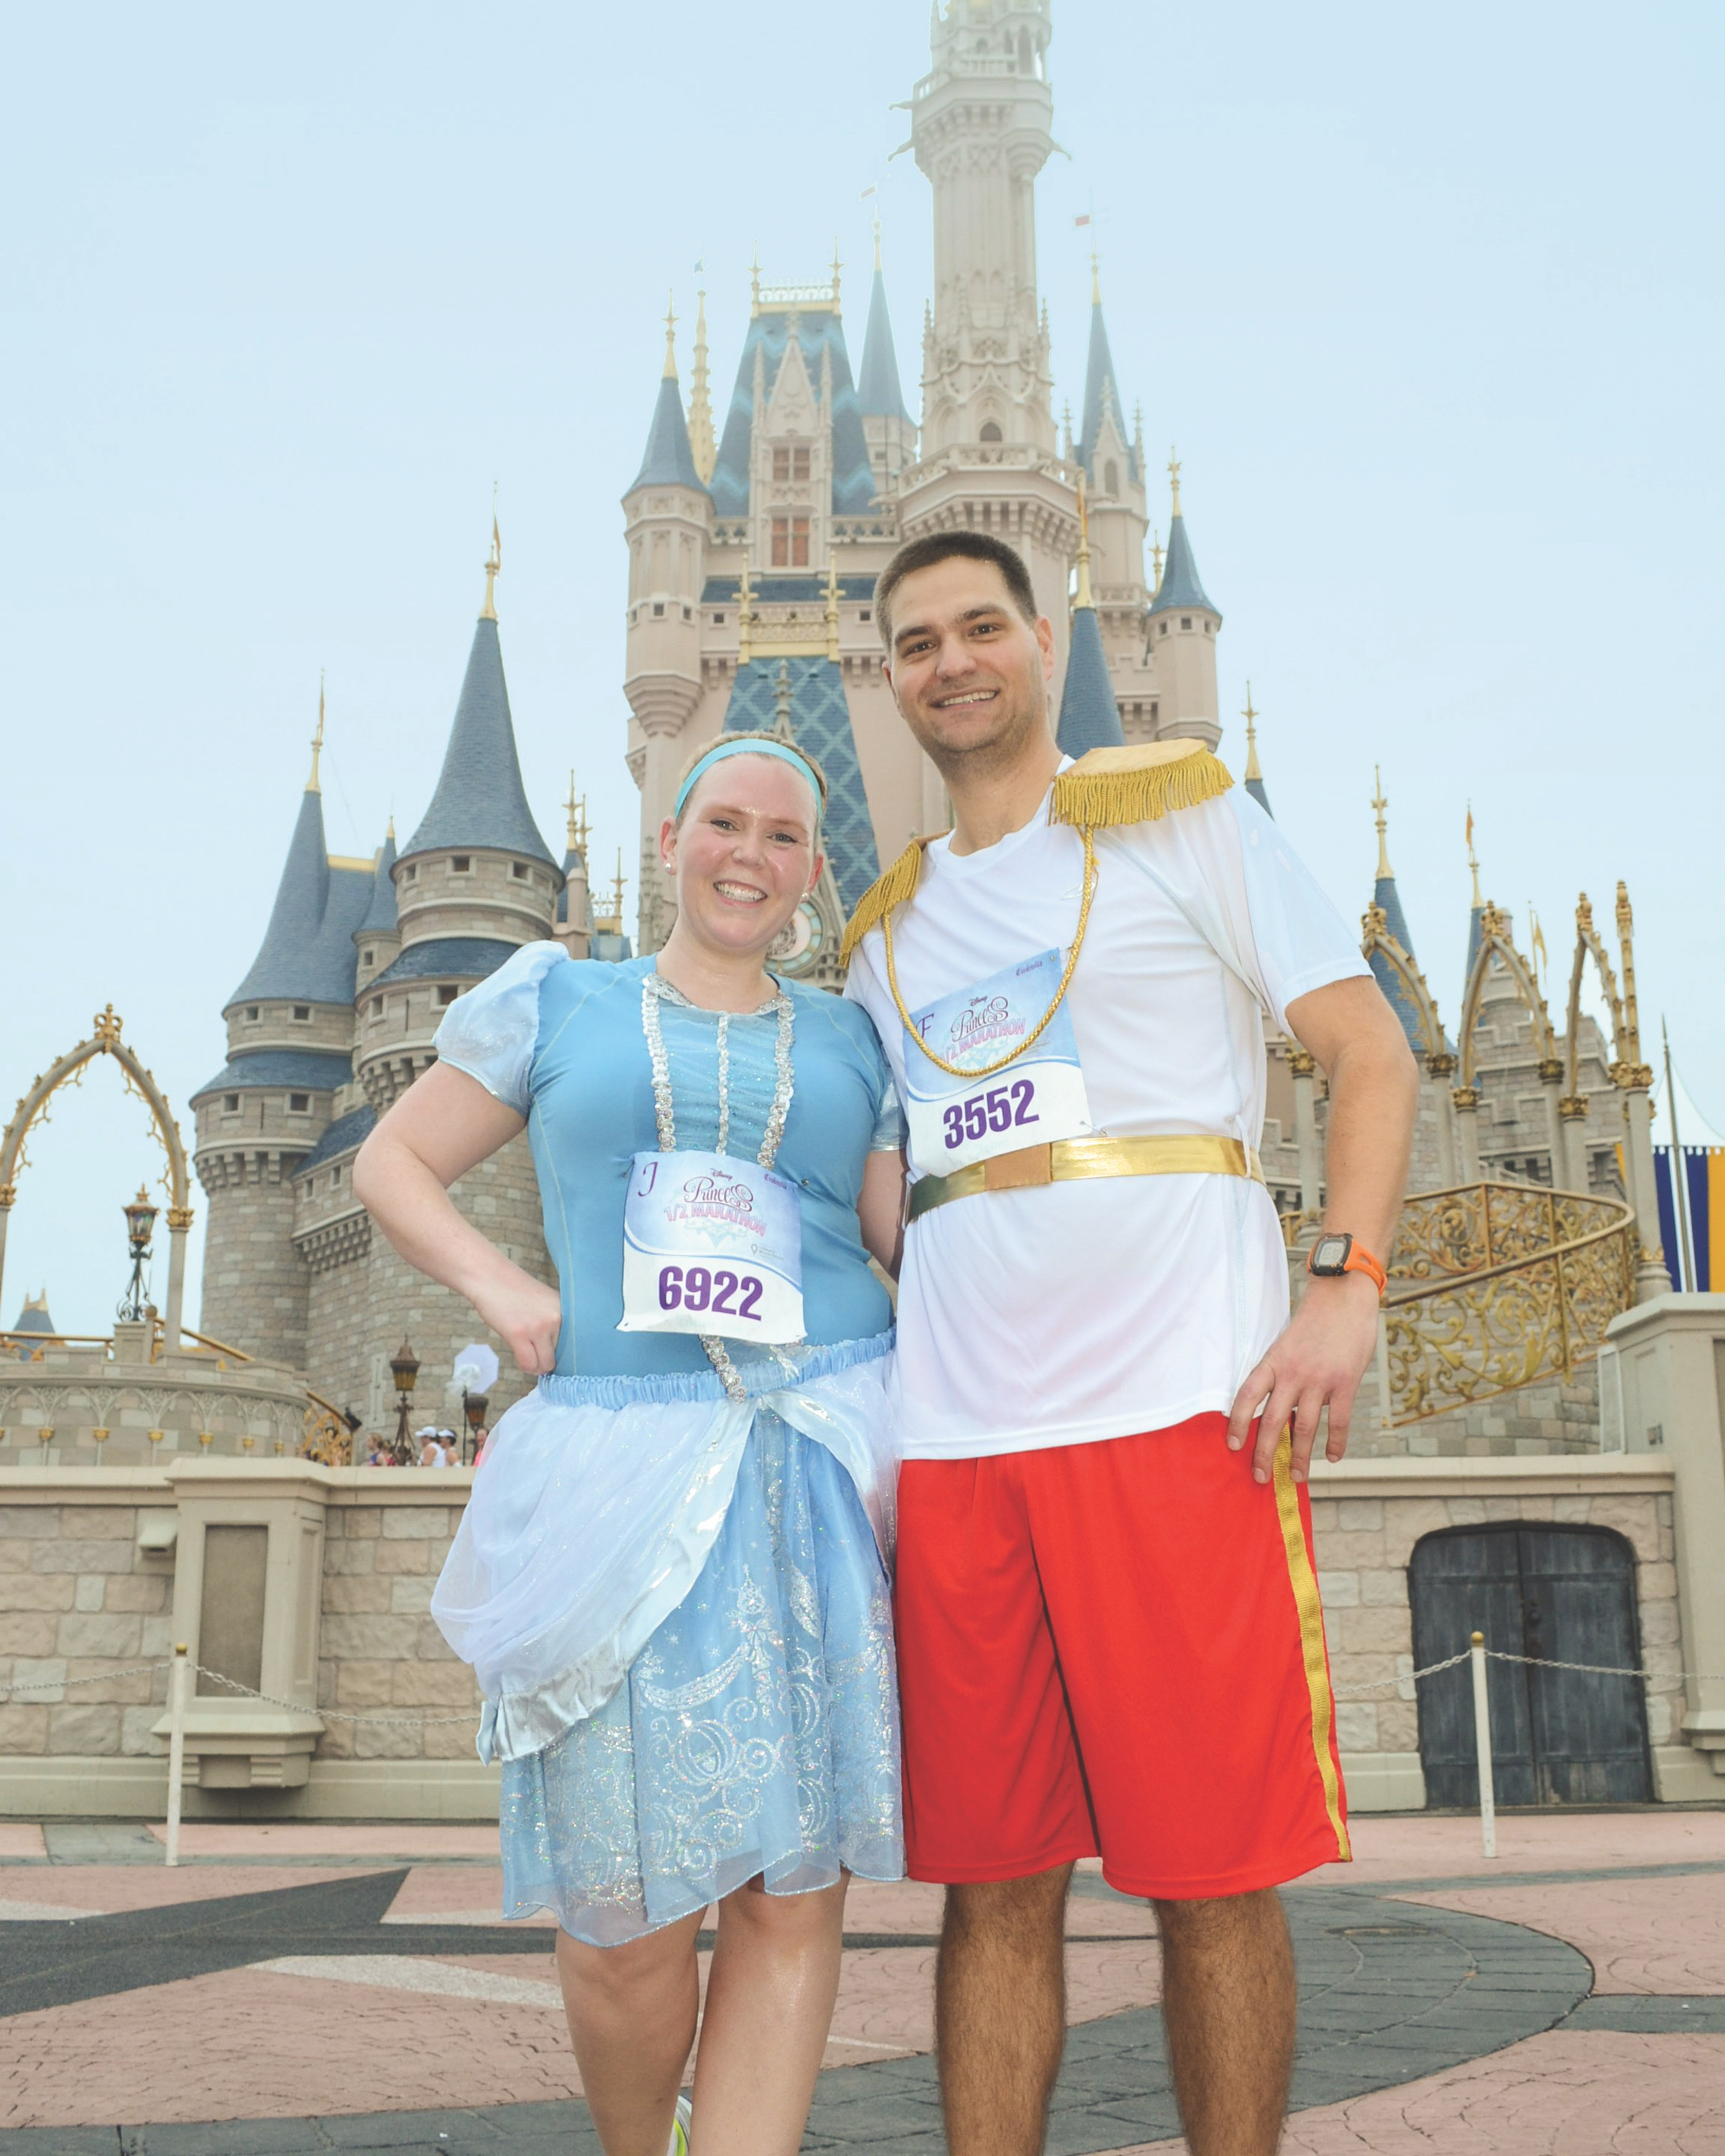 Running the Princess Half Marathon.